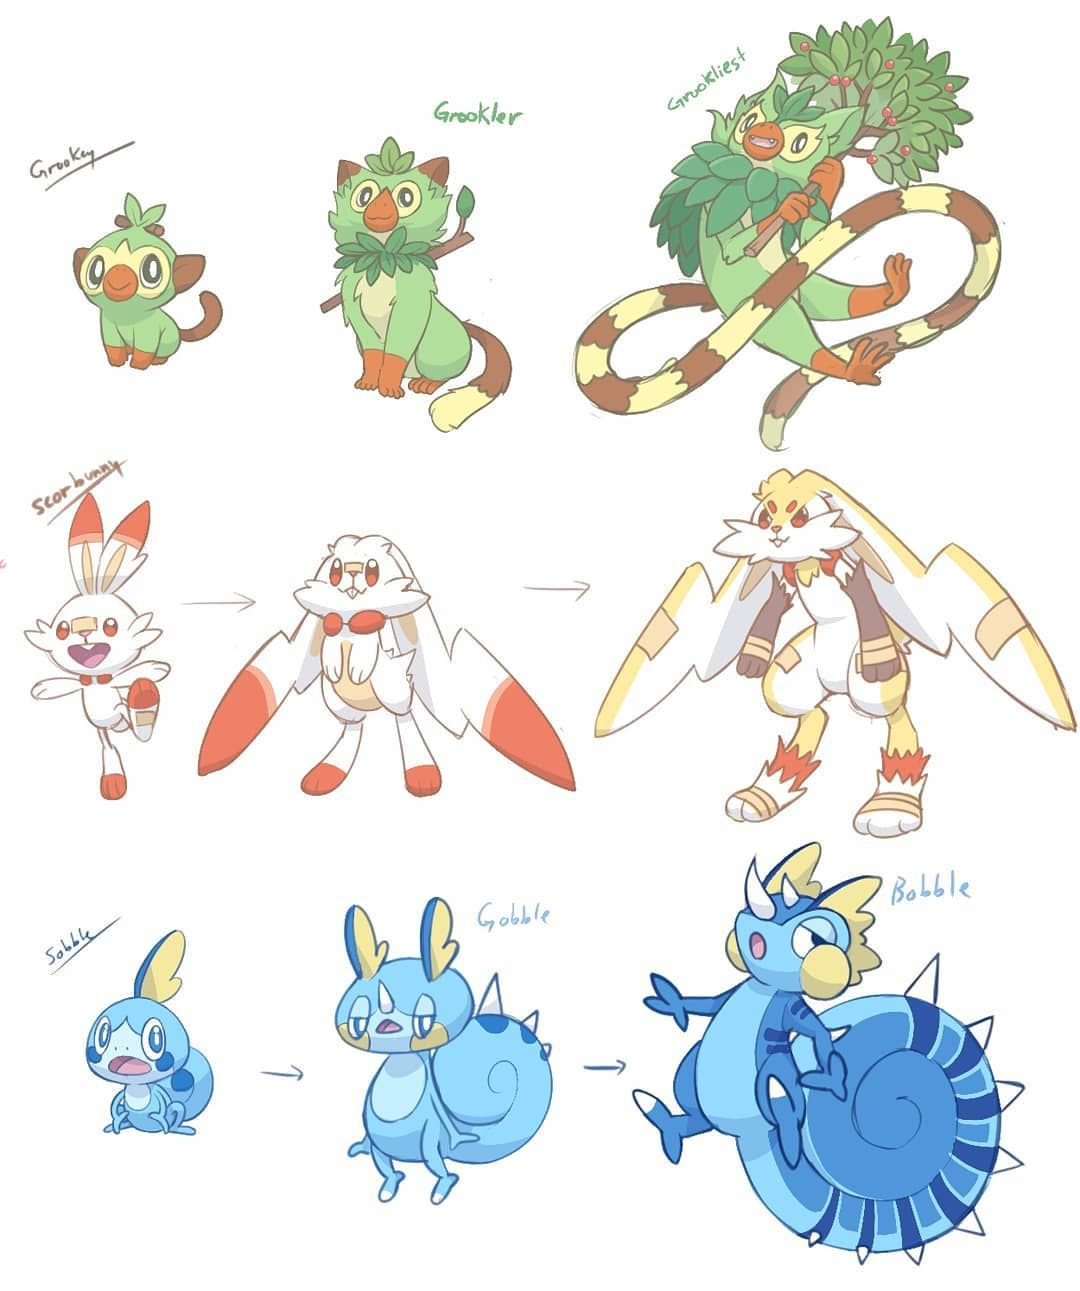 Pin By Isaiah Kirk On Pokeminzzz With Images Pokemon Eevee